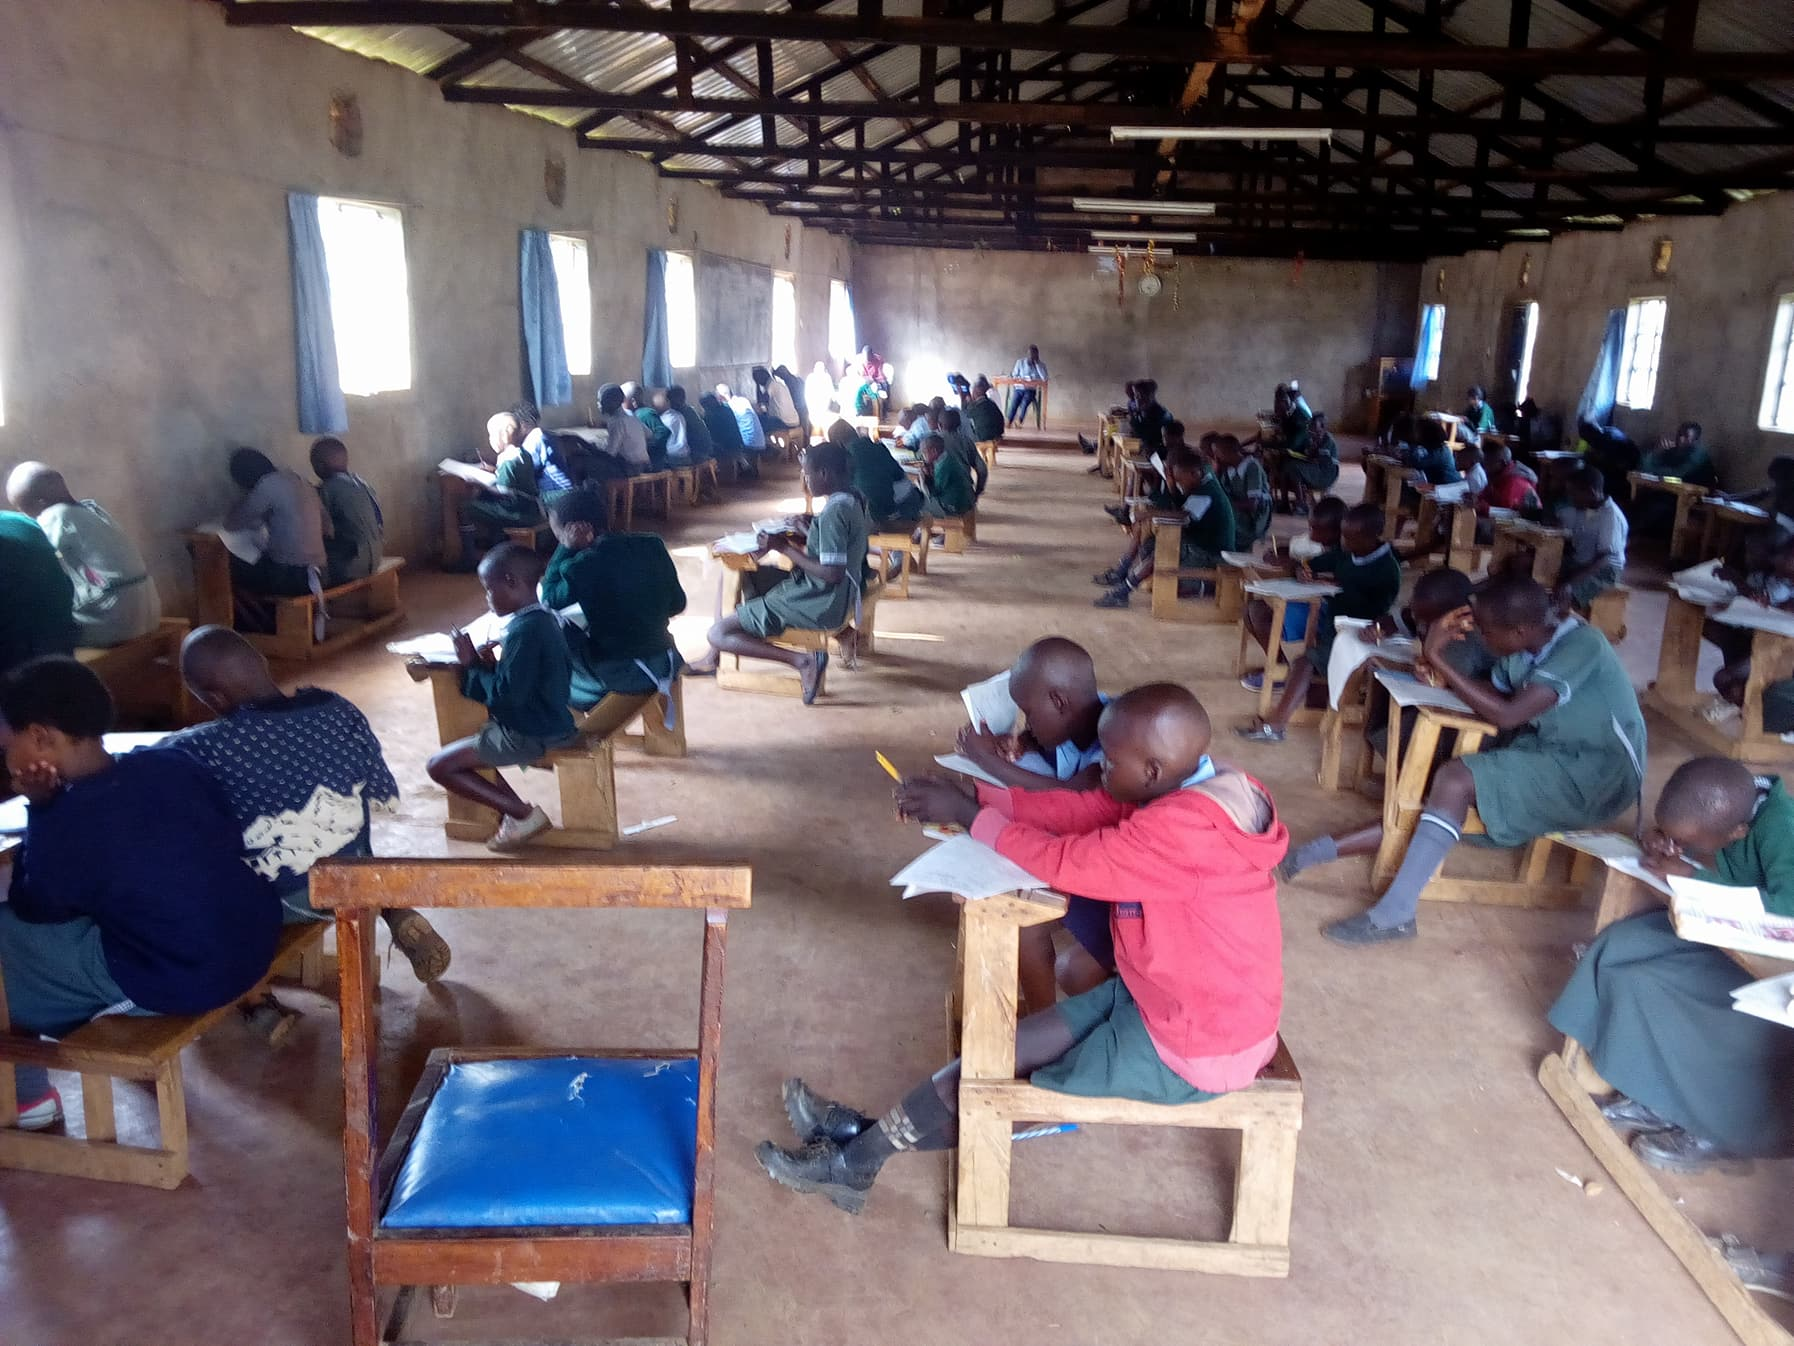 Christ Care Academy students diligently taking their first semester continuous exams